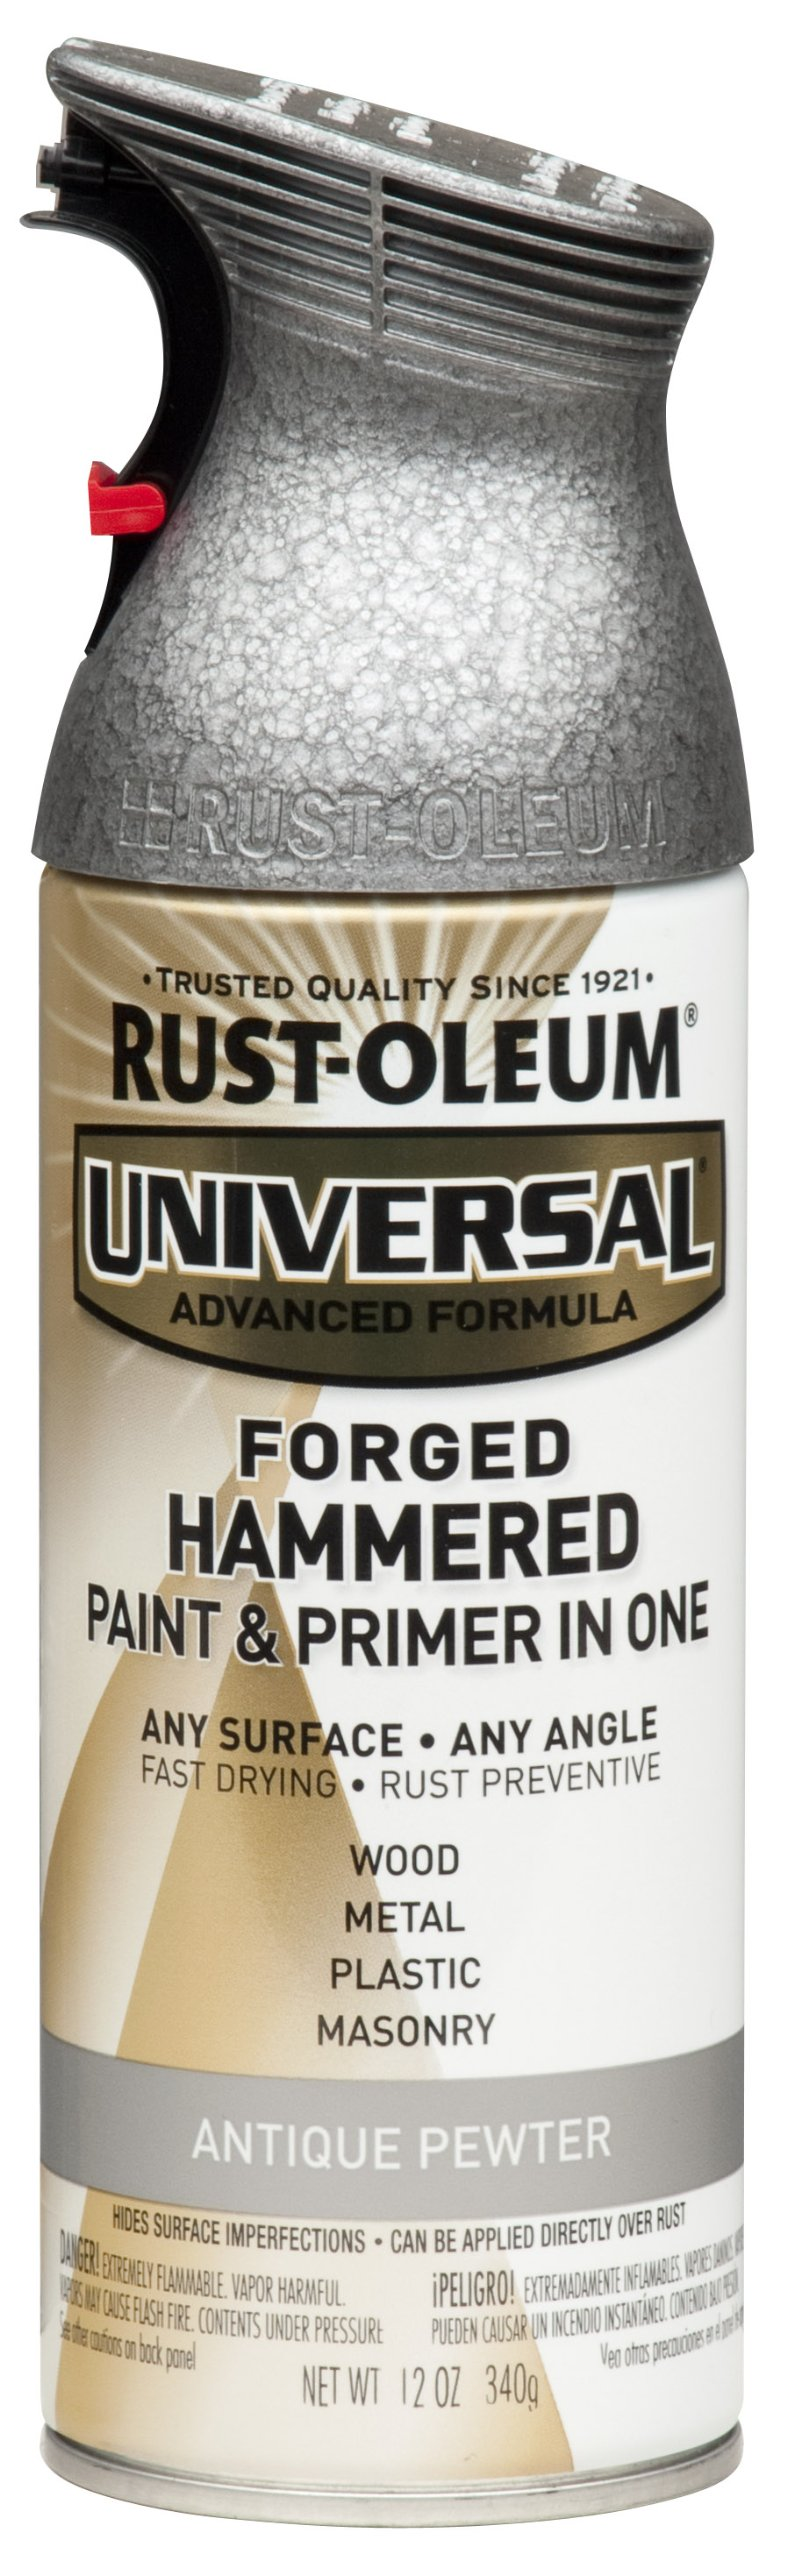 Rust-Oleum 271481 Universal Forged Hammered Spray Paint, 12 oz, Antique Pewter